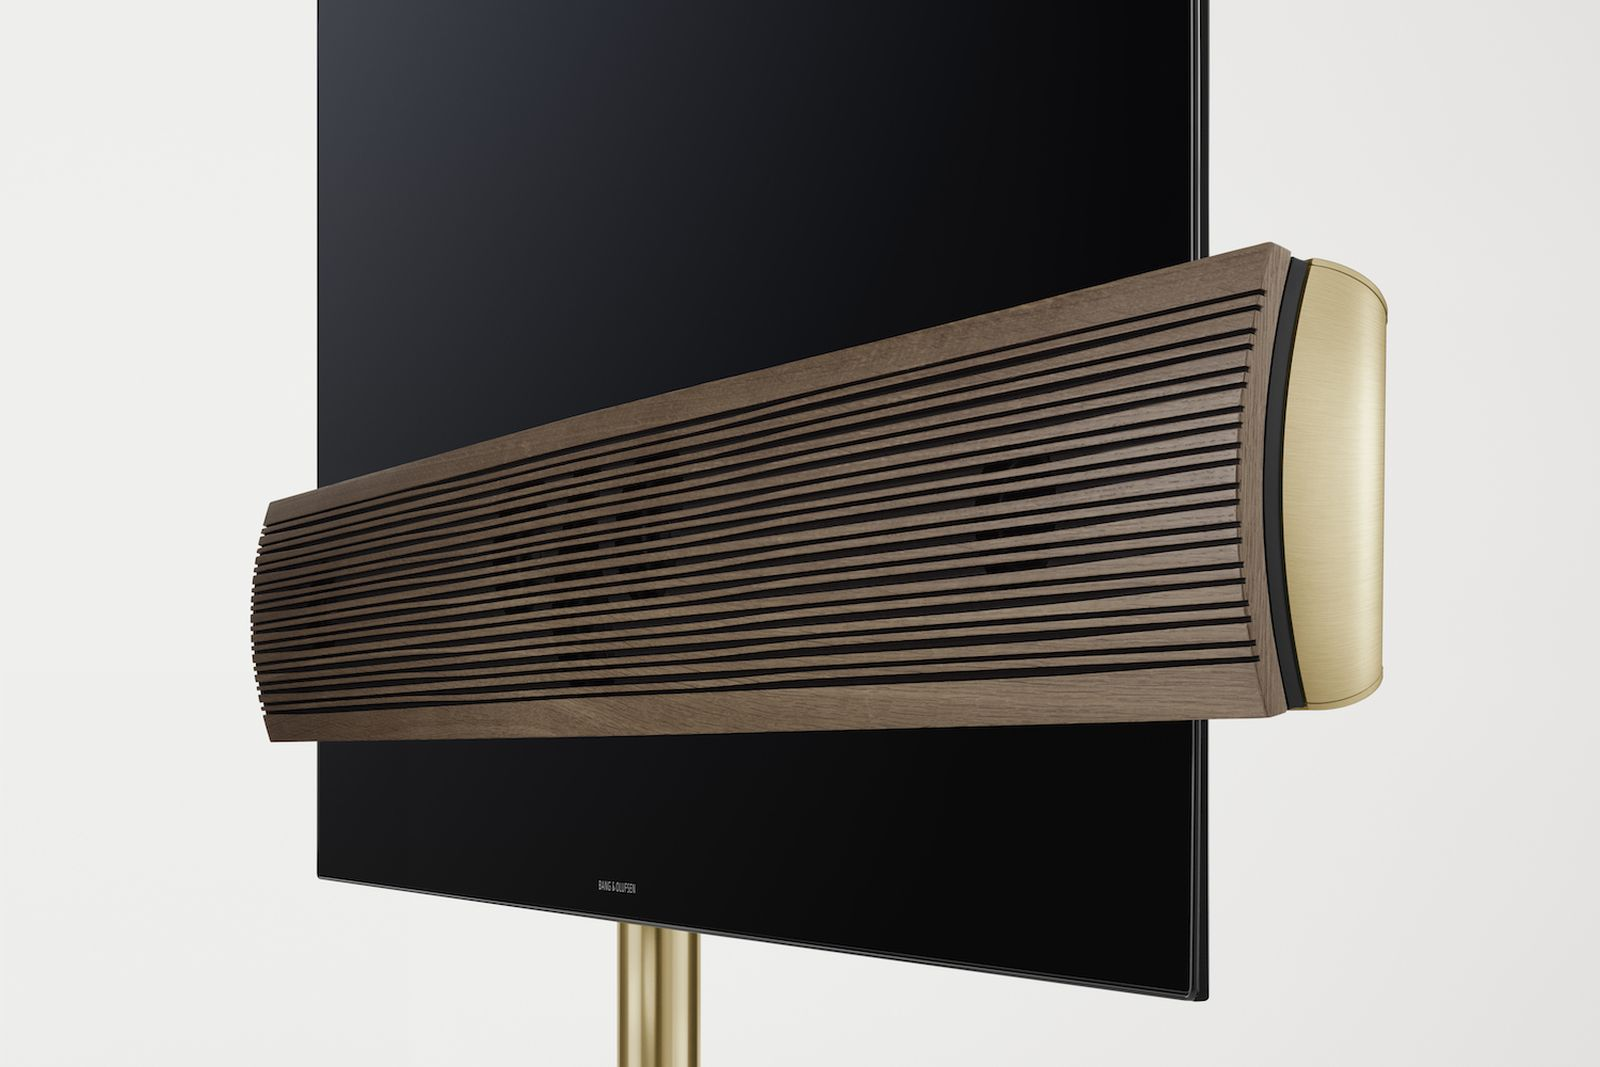 bang-olufsen-beovision-eclipse-and-beolab-50-new-colorway-07